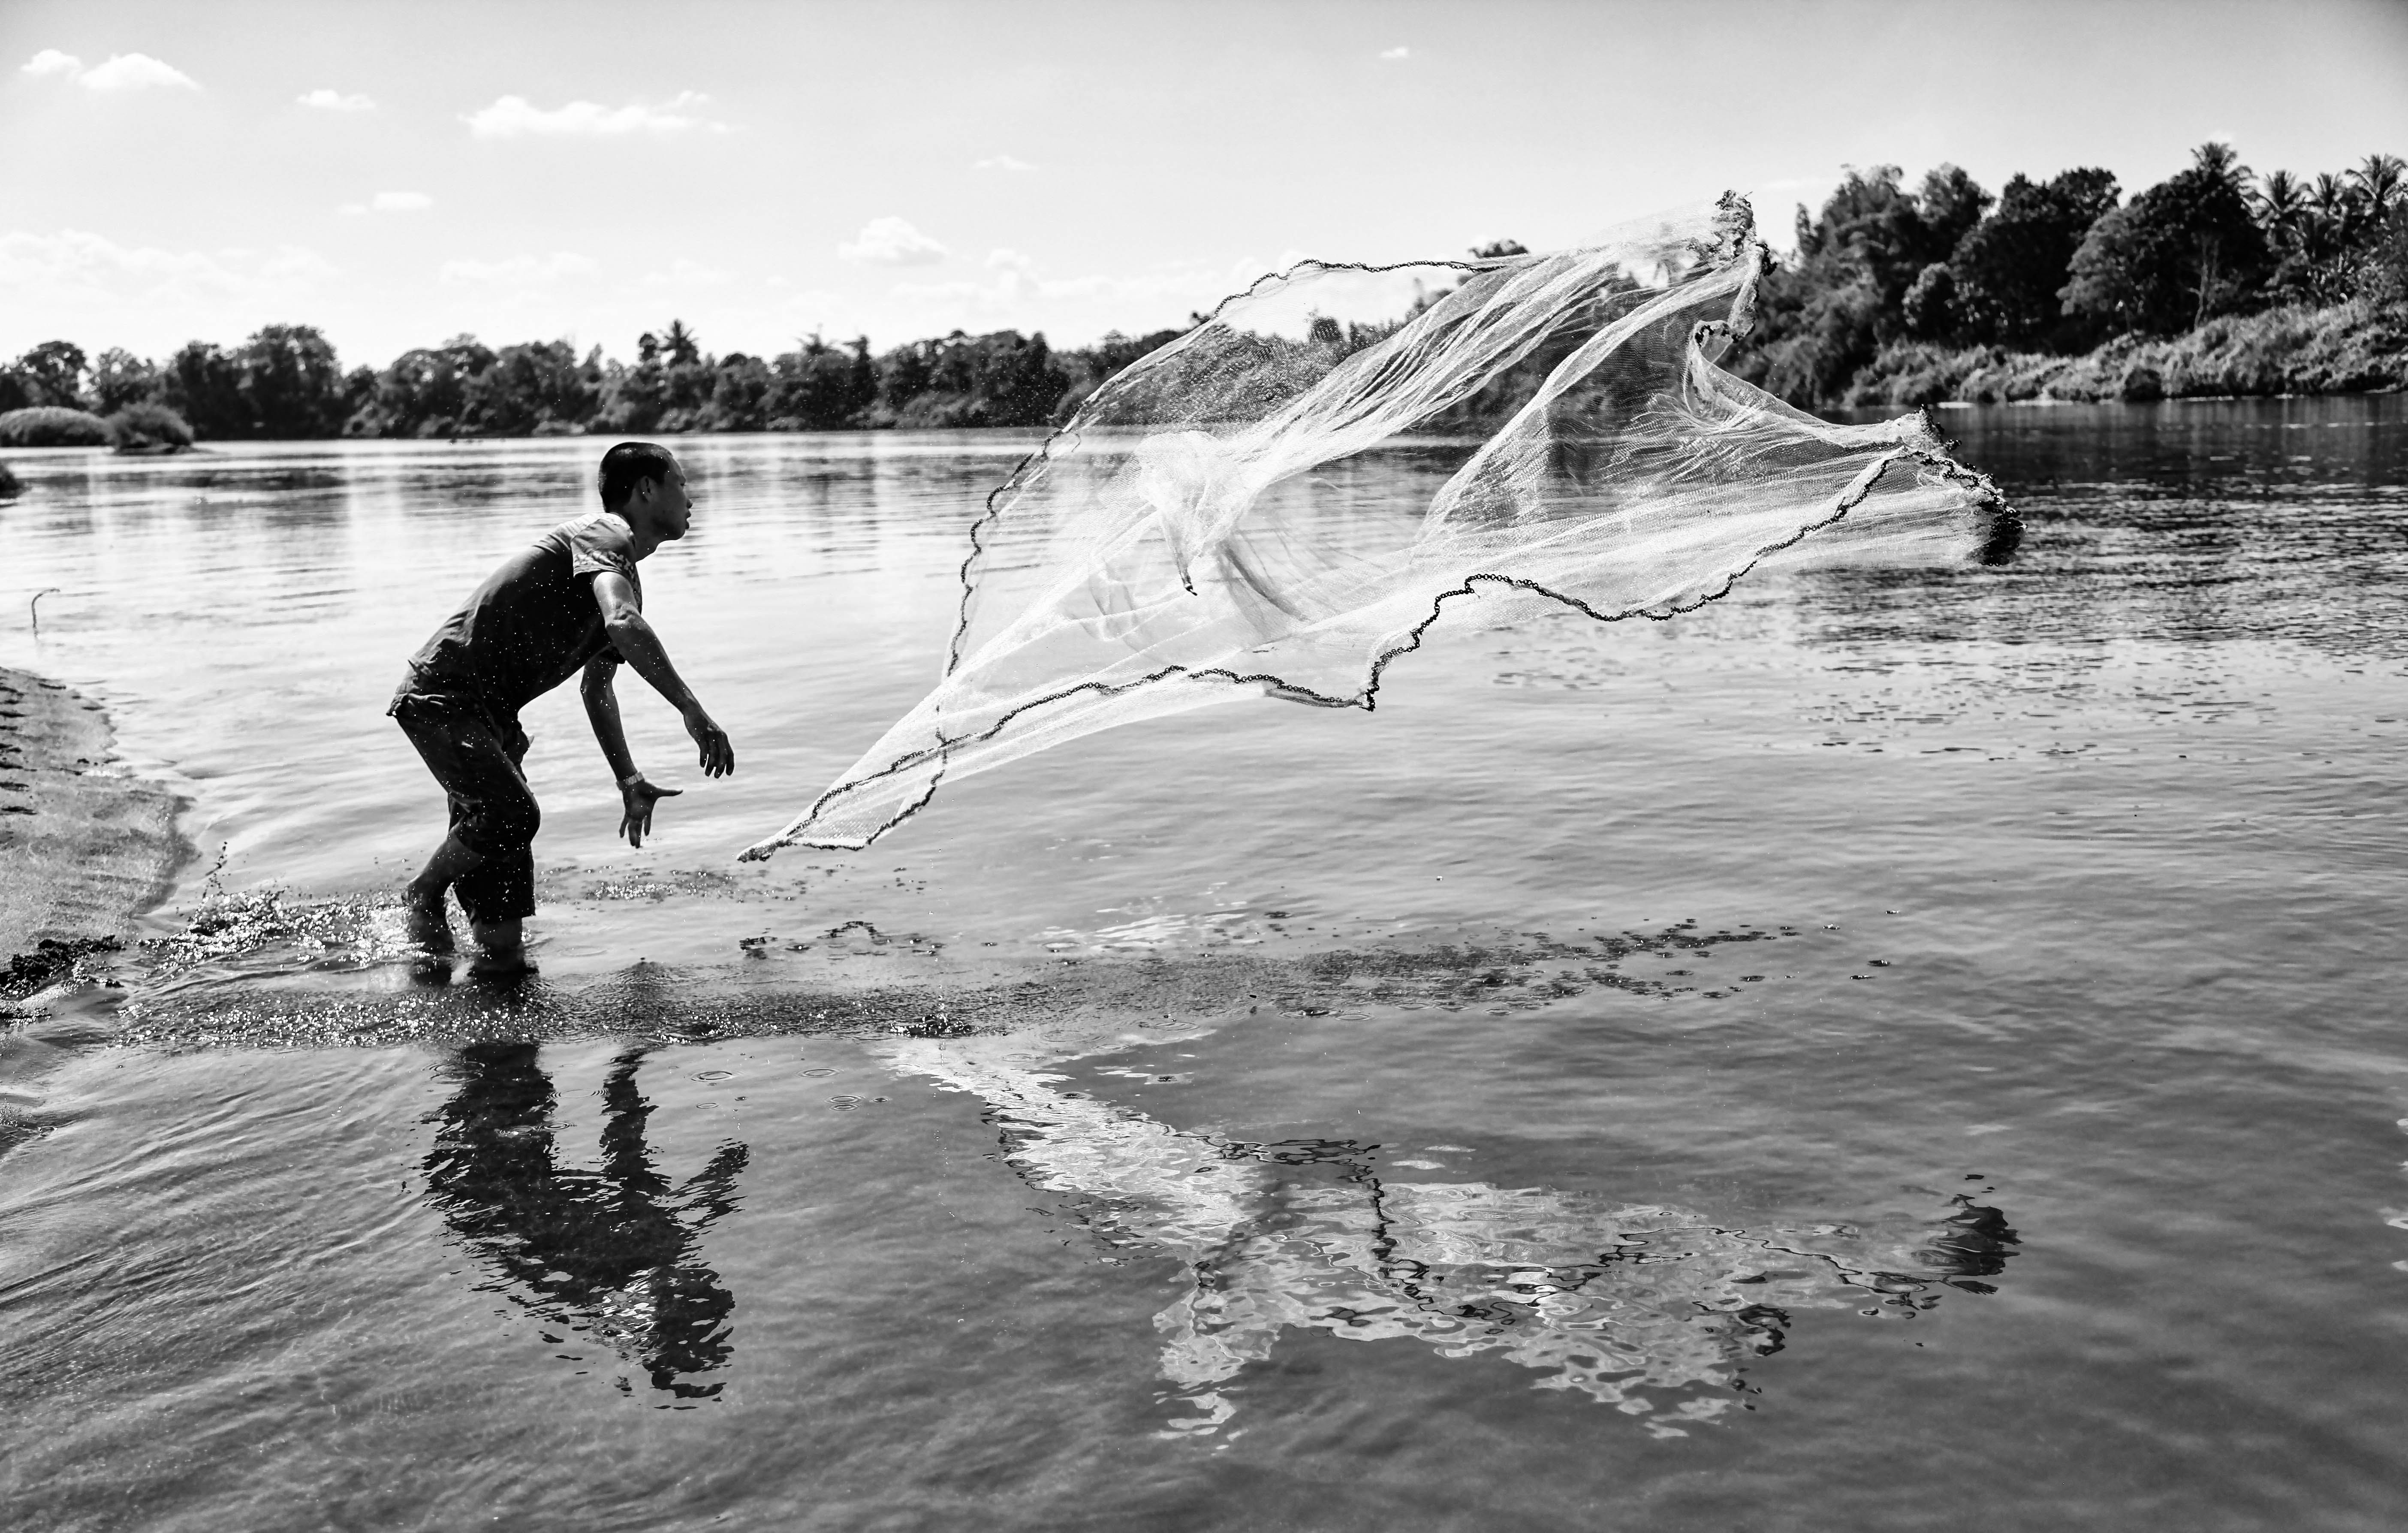 Grayscale Photo of Man Throwing a Fishing Net